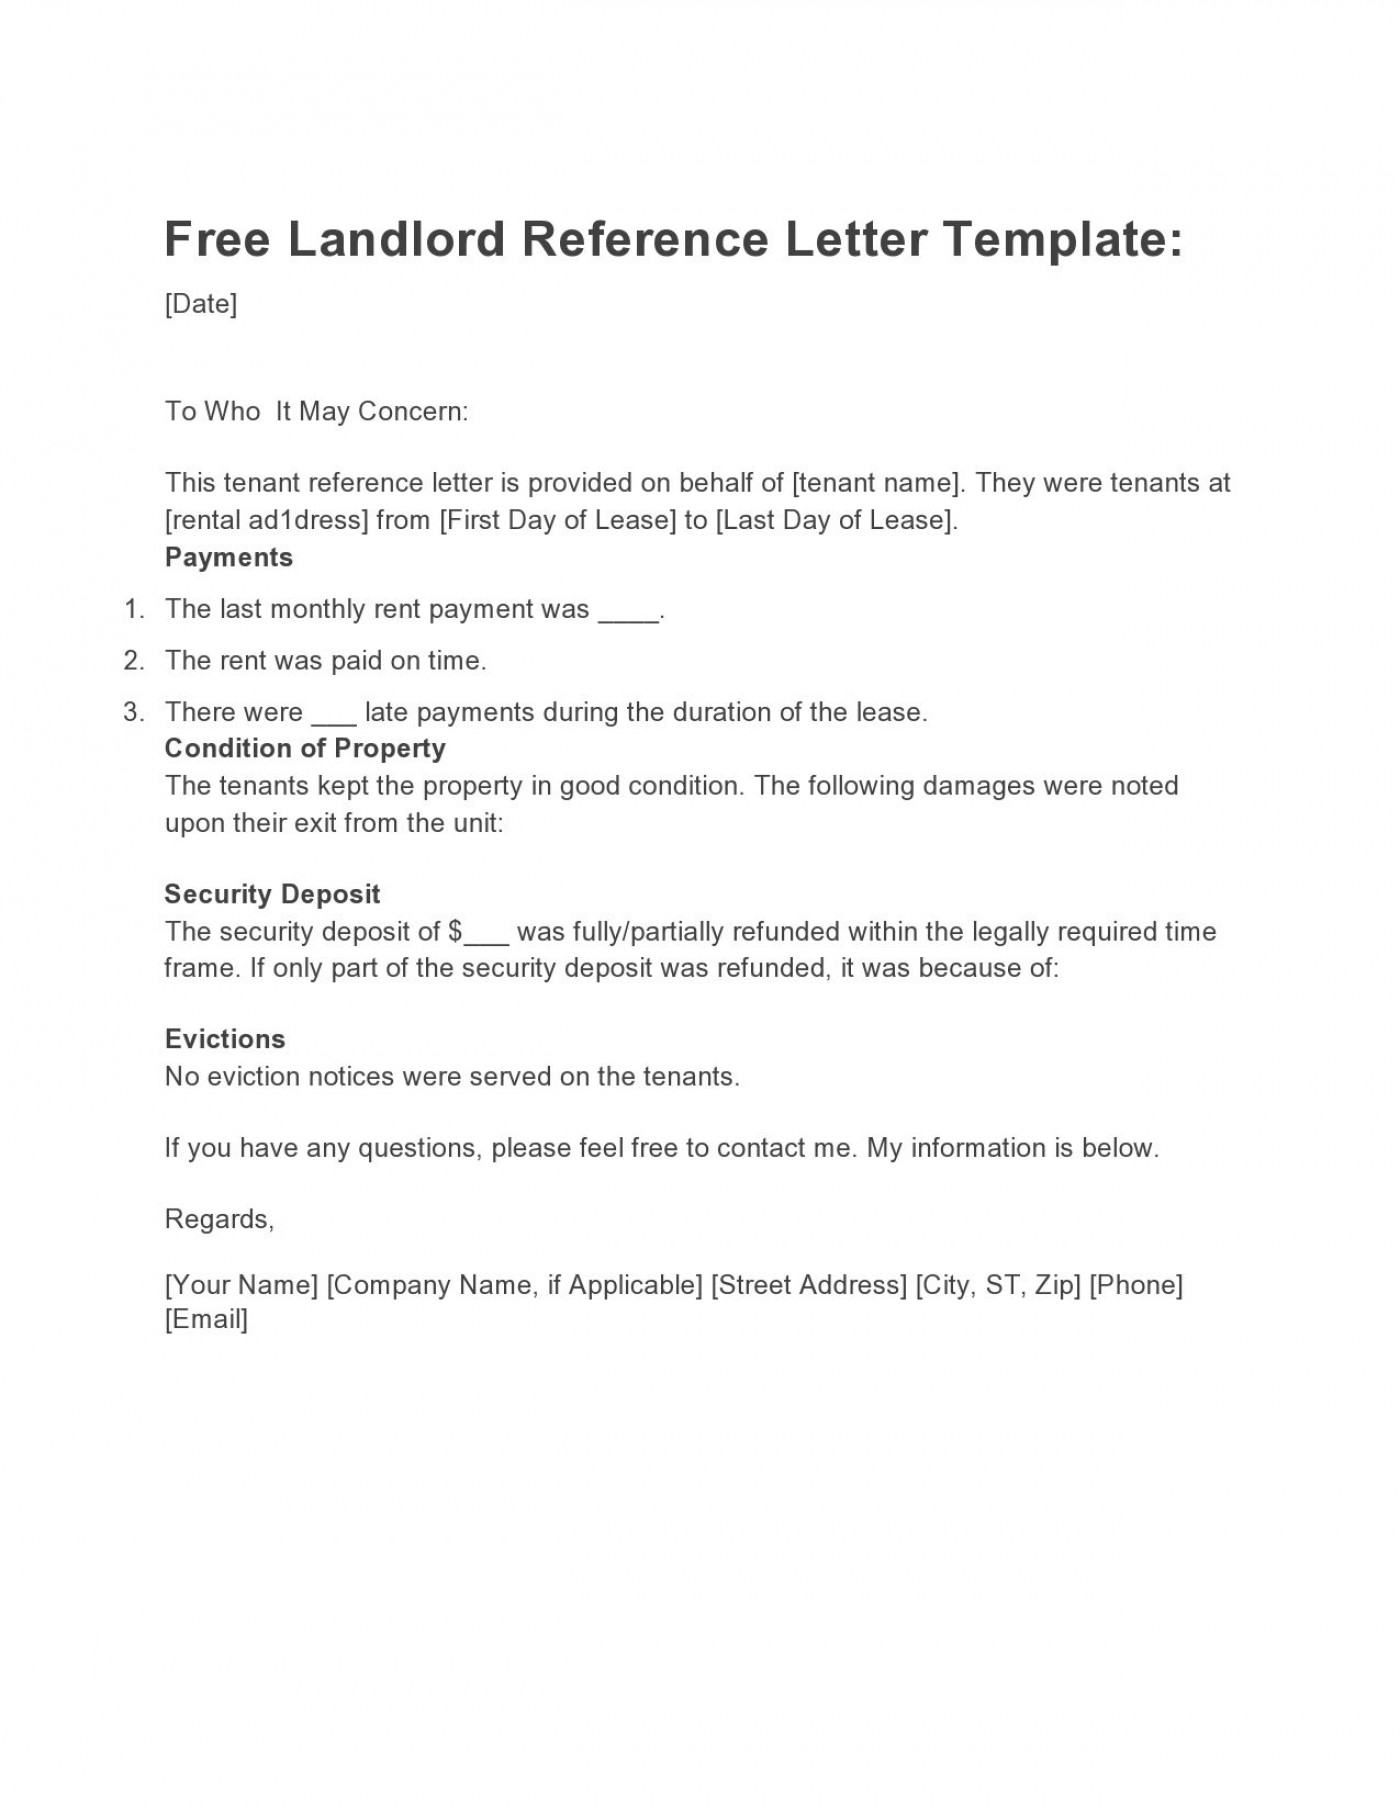 007 Astounding Free Reference Letter Template For Tenant Photo 1400